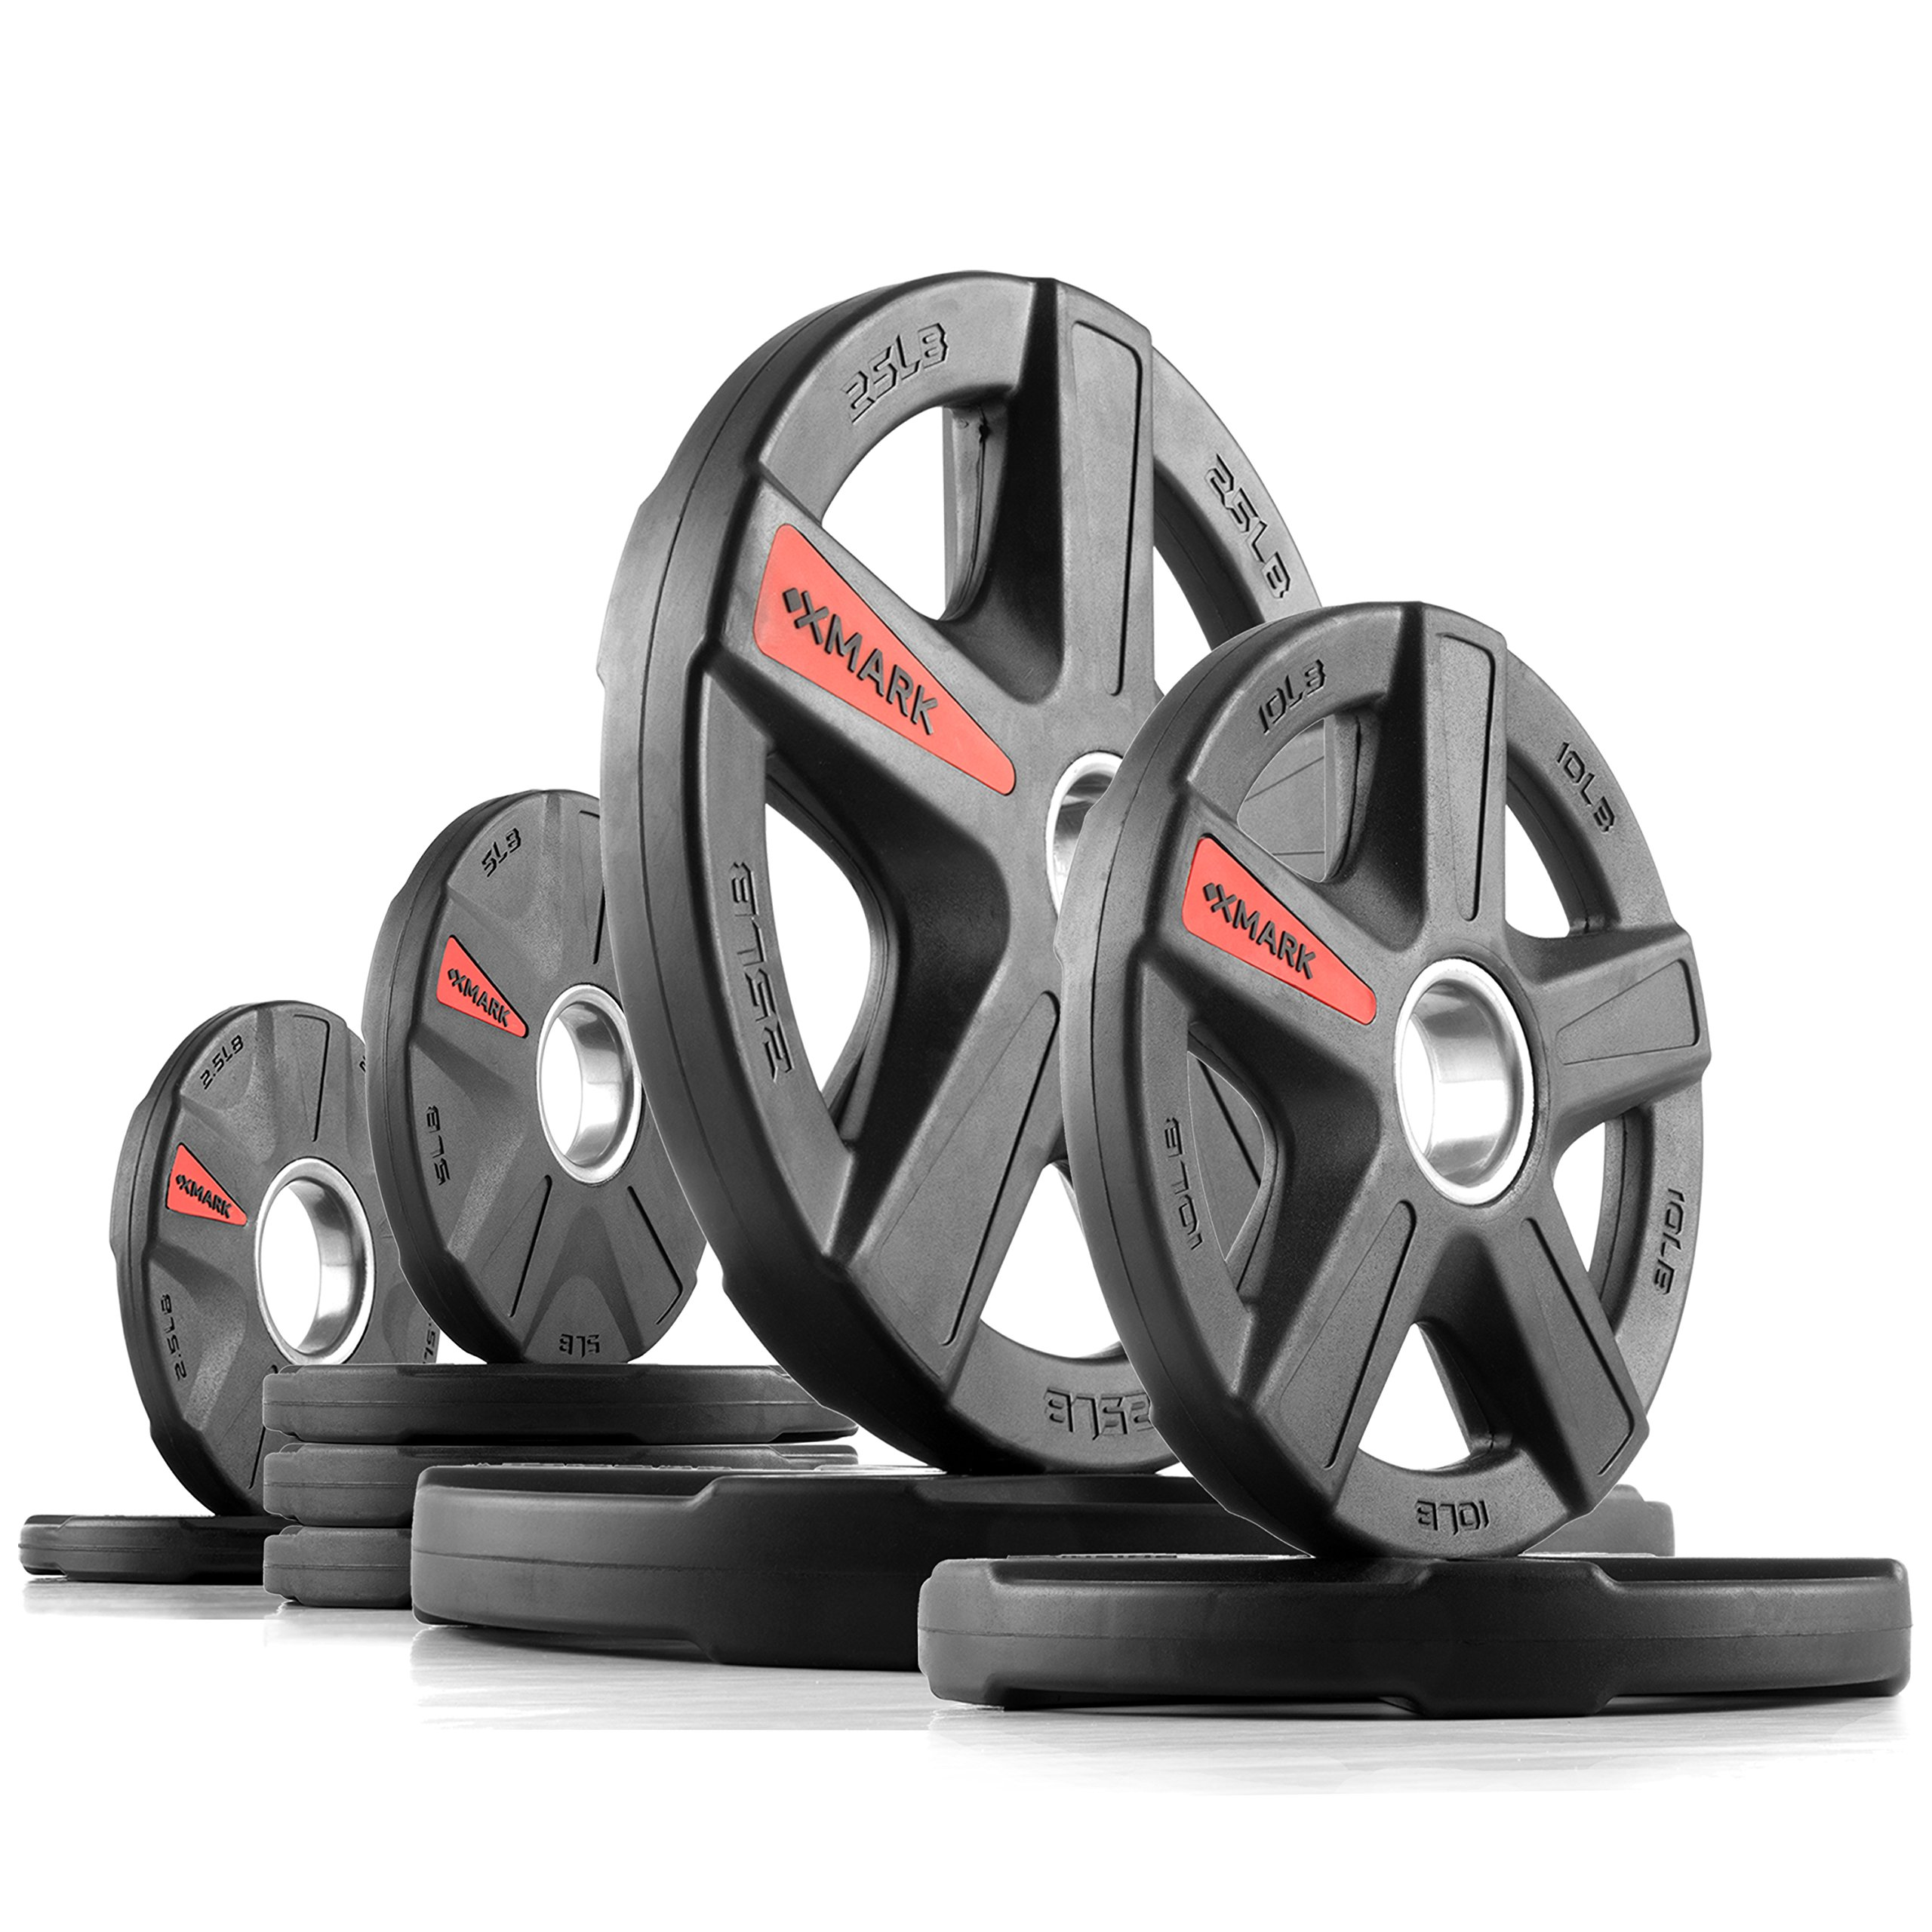 XMark Texas Star 95 lb Set Olympic Plates, Patented Design, One-Year Warranty, Olympic Weight Plates by XMark Fitness (Image #1)